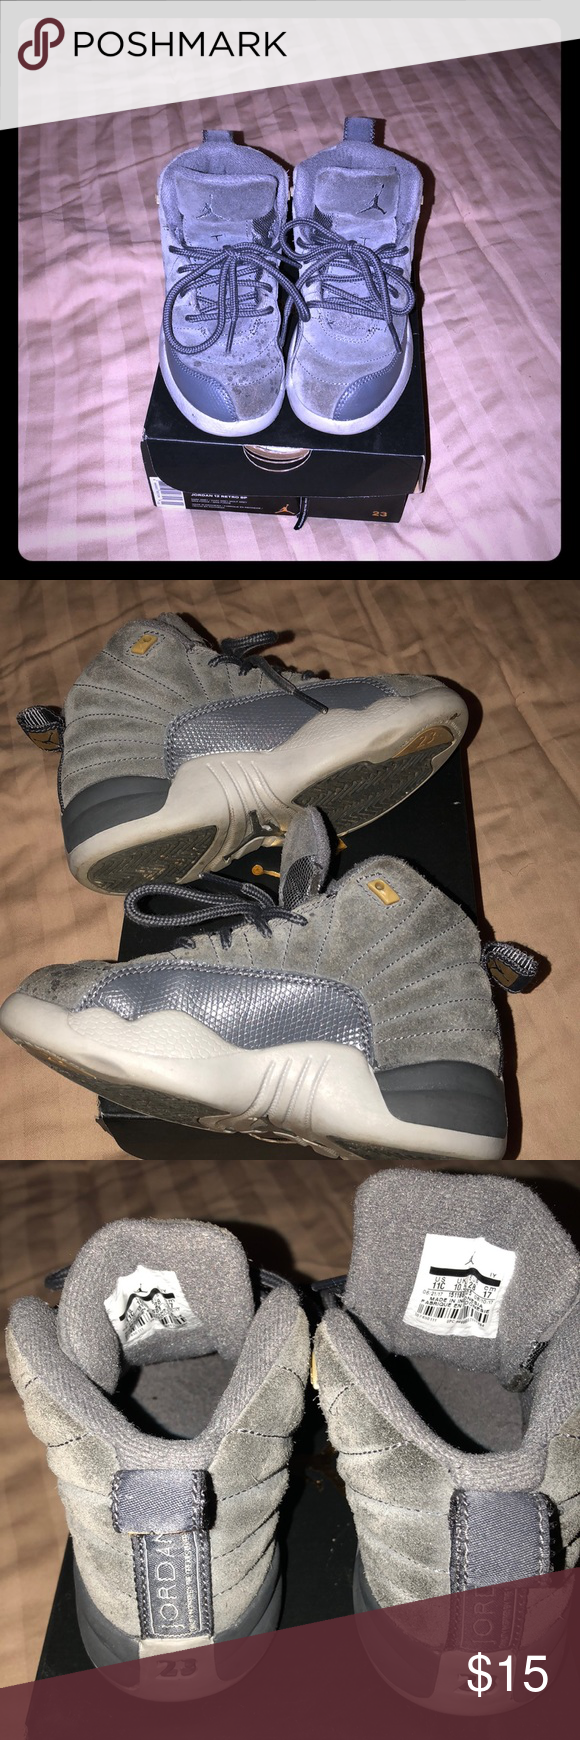 e7348c9053 Jordan 12 Retro Toddler size 11 has water spots on top of right sneaker all  grey